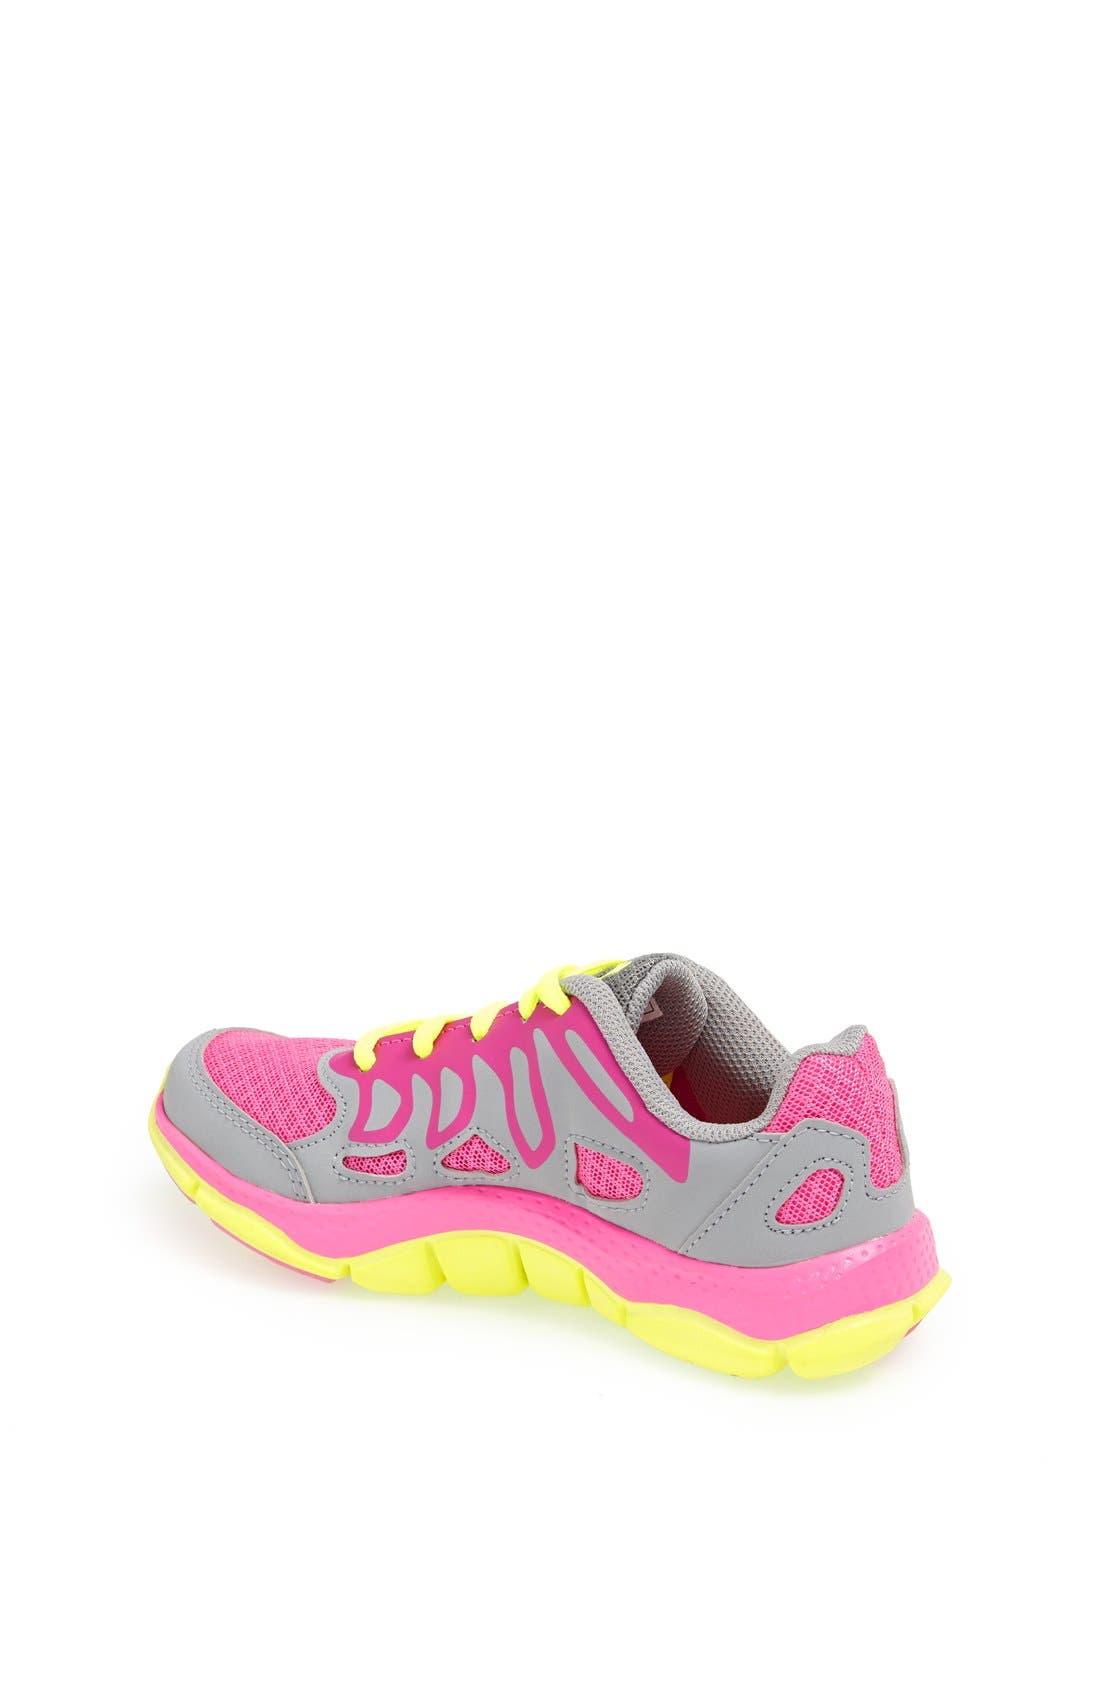 Alternate Image 2  - Under Armour 'Engage' Running Shoe (Toddler & Little Kid)